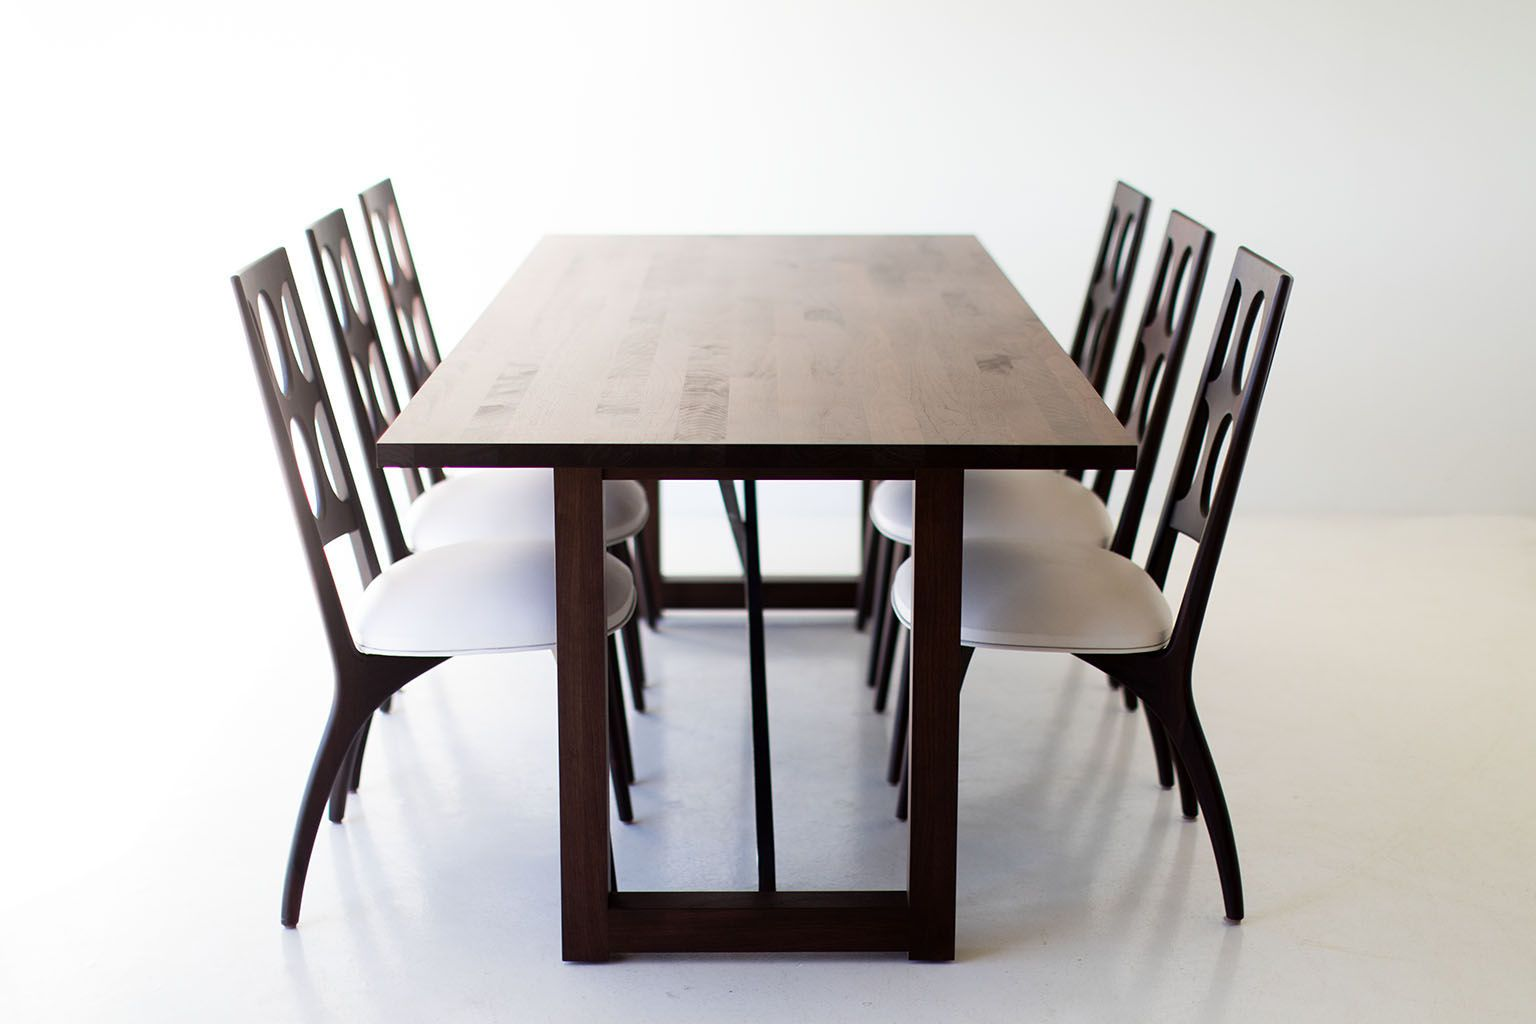 Modern-Wood-Dining-Table-01